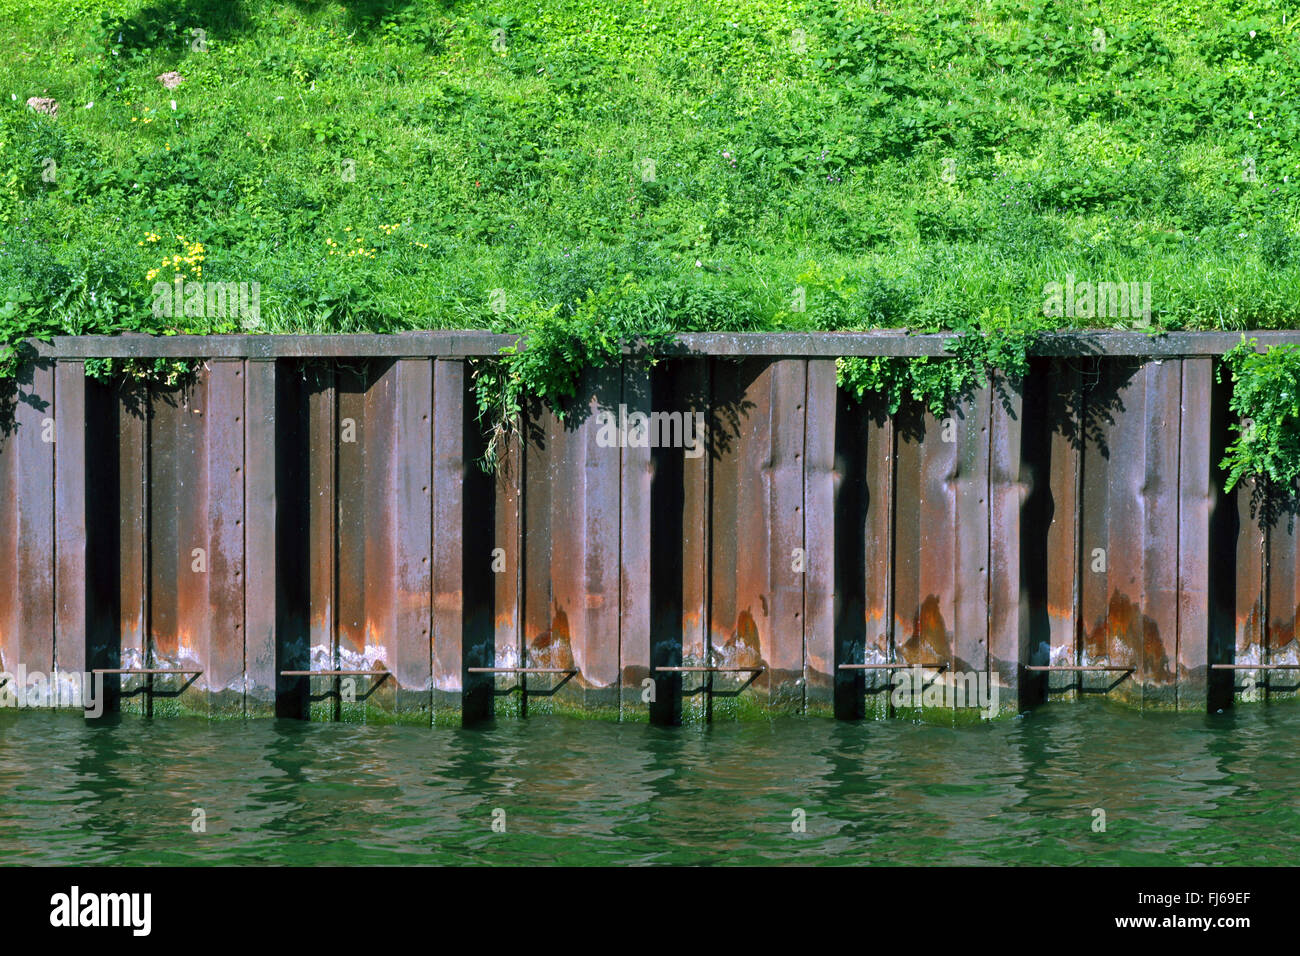 Rhine-Herne Canal with sheet piling, Germany, North Rhine-Westphalia, Ruhr Area, Essen - Stock Image